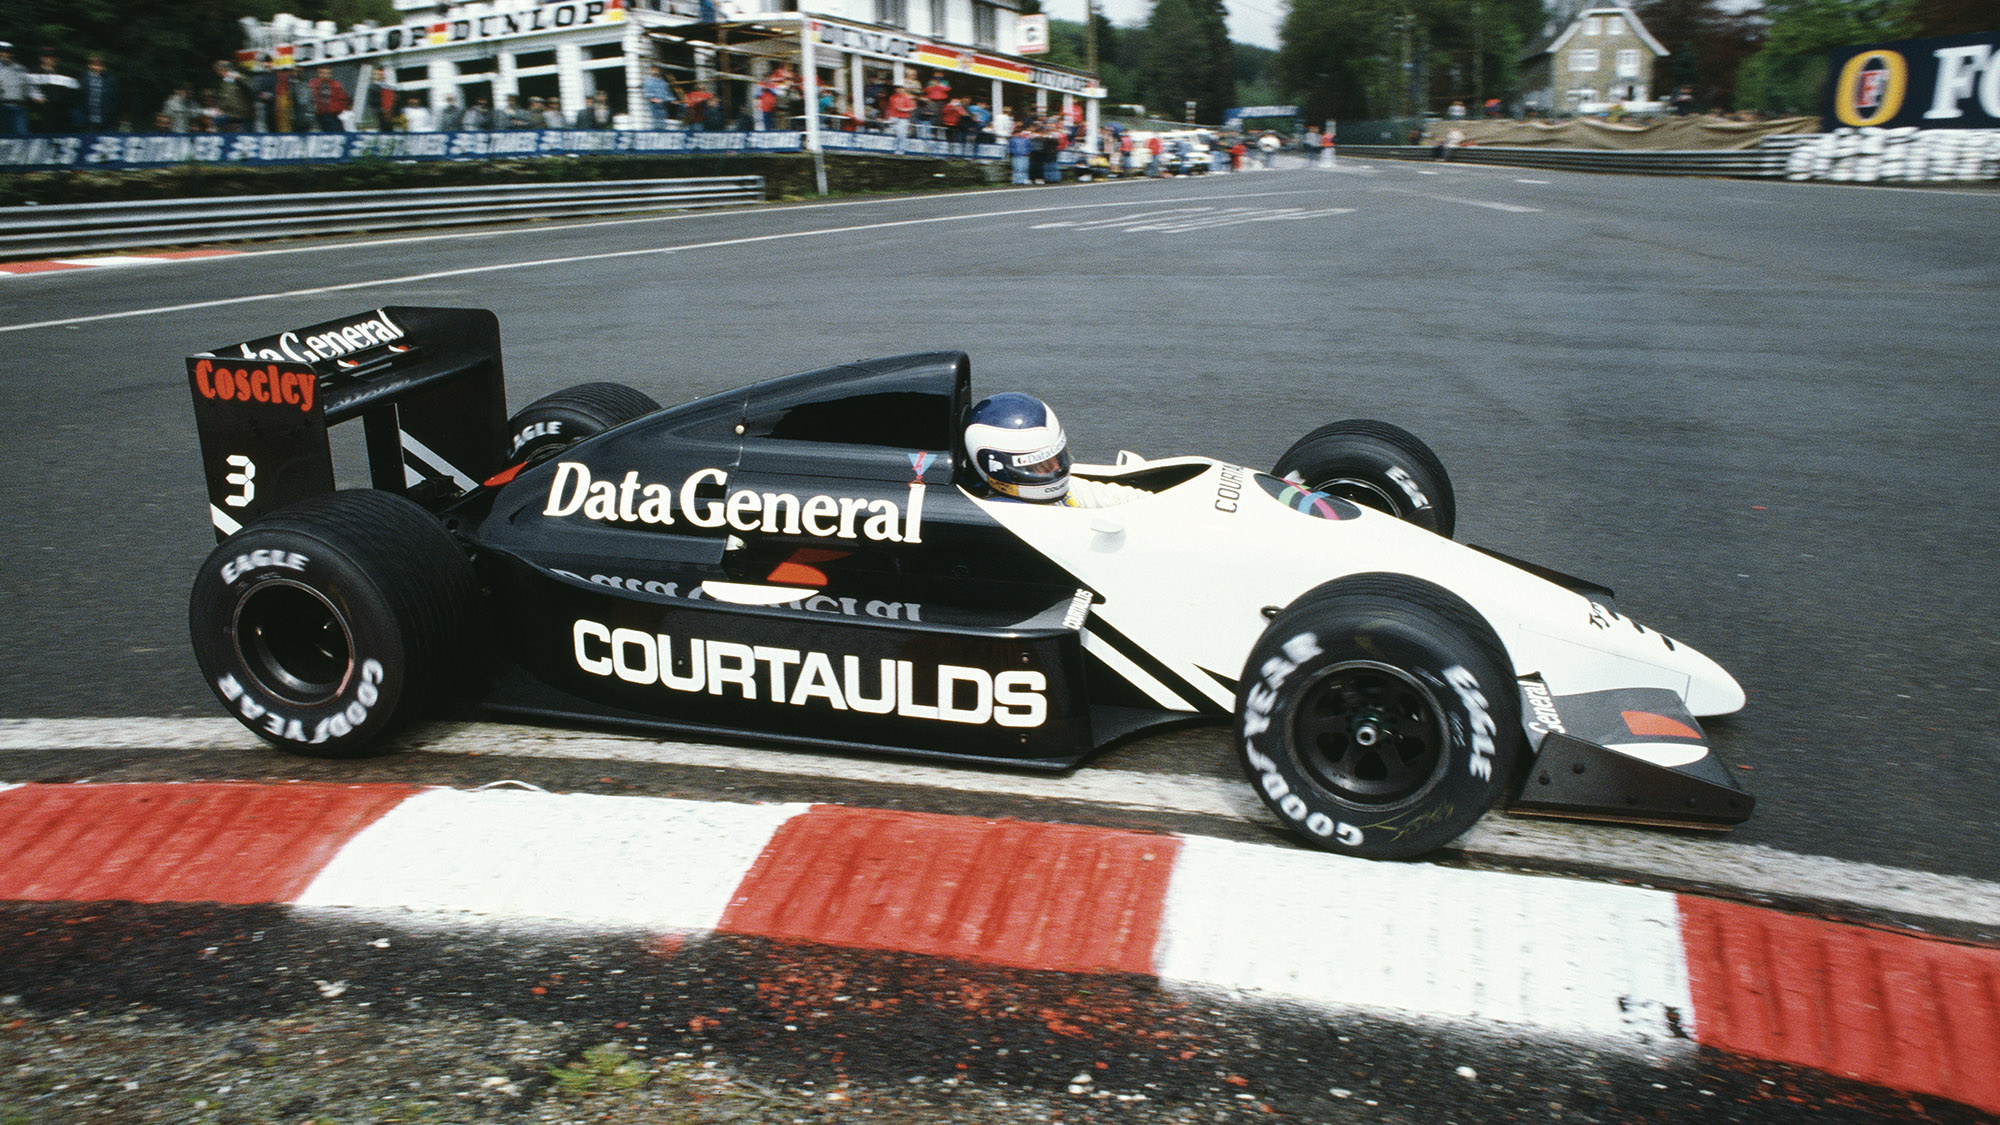 Jonathan Palmer in a Tyrrell DG016 at the 1987 Belgian Grand Prix at Spa